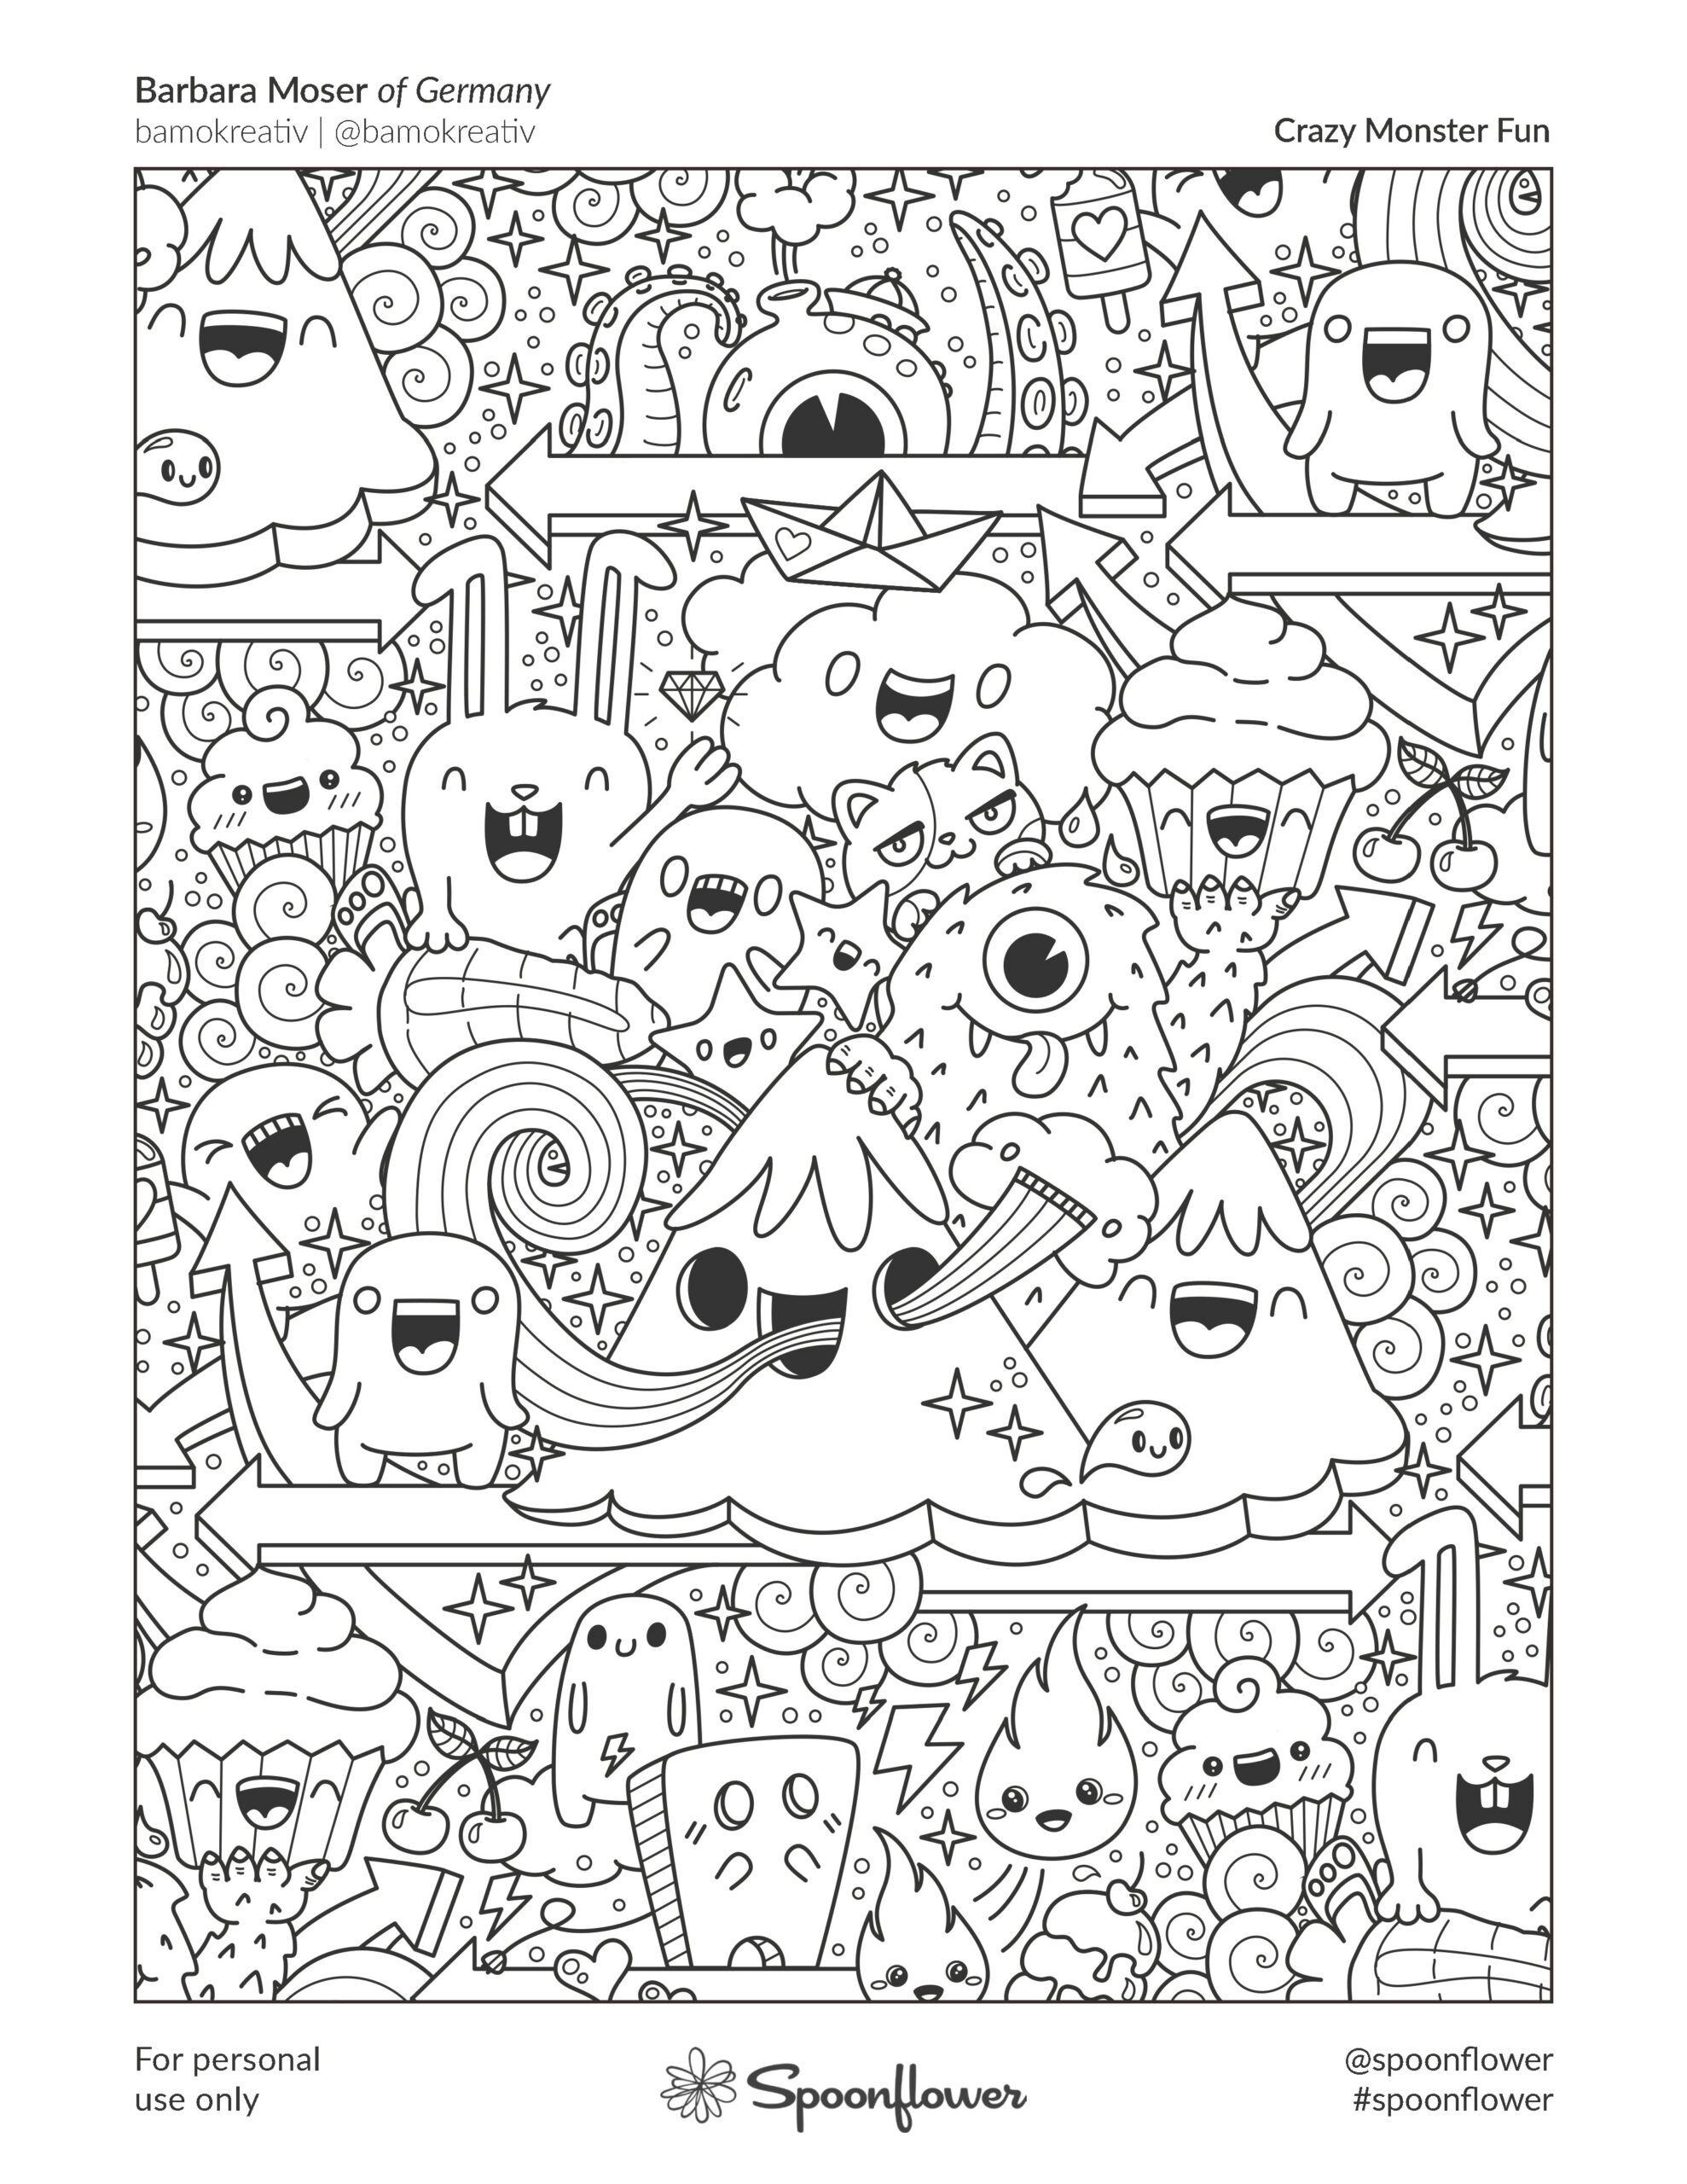 Coloring Book Page - Crazy Monster Fun by Barbara Moser